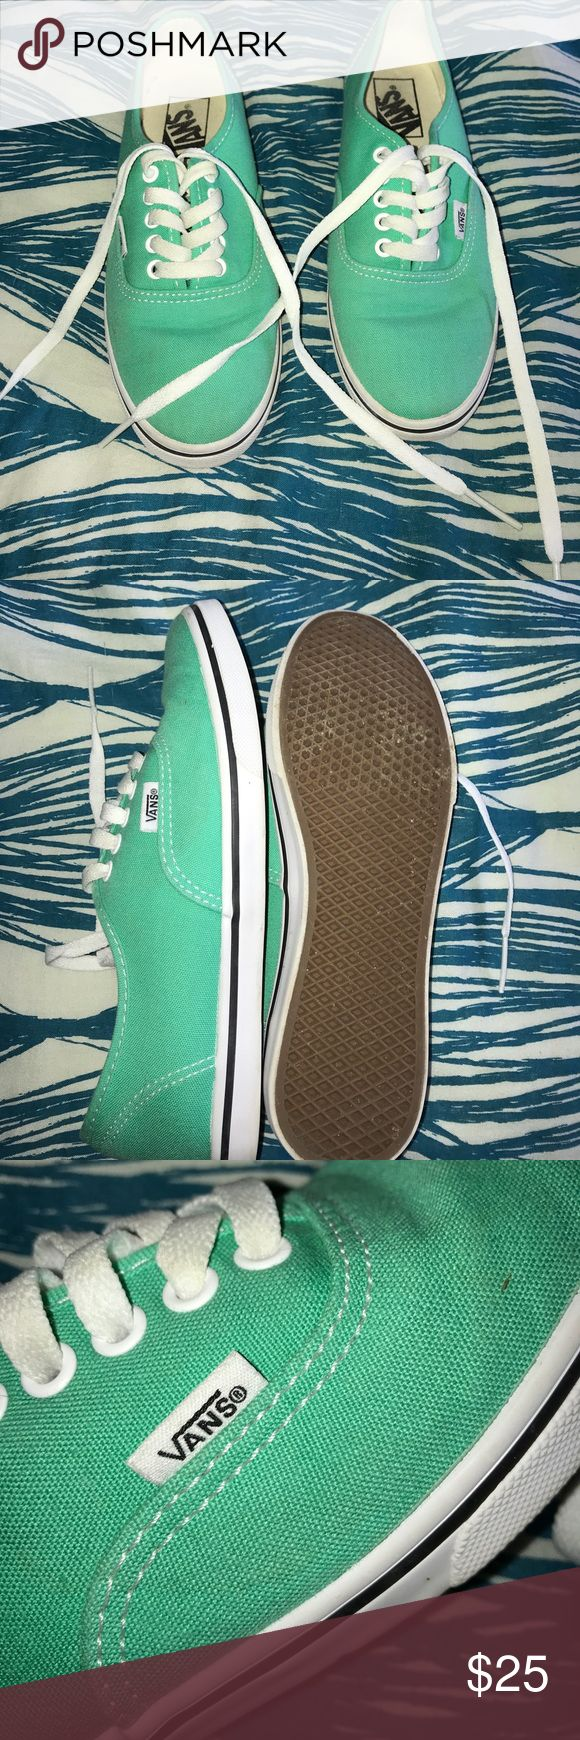 teal vans IN GREAT CONDITION ONY WORN A FEW TIMES!!!! teal vans size 6.5 Vans Shoes Sneakers